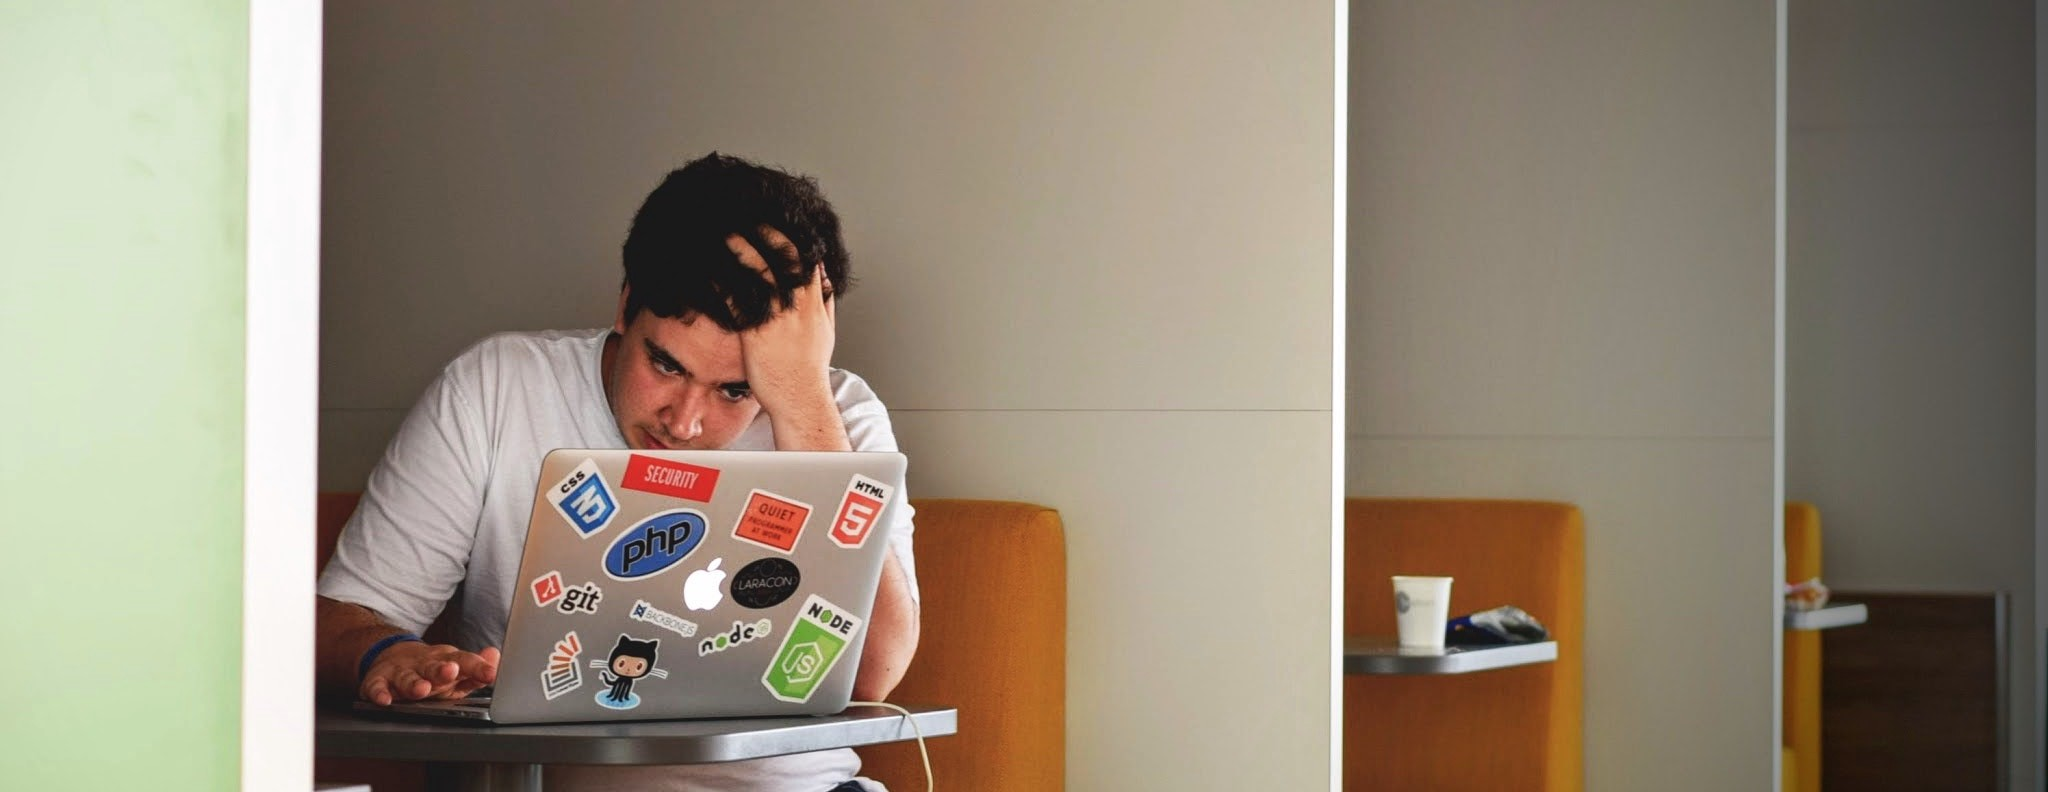 Man with his head in his hand, staring at a laptop